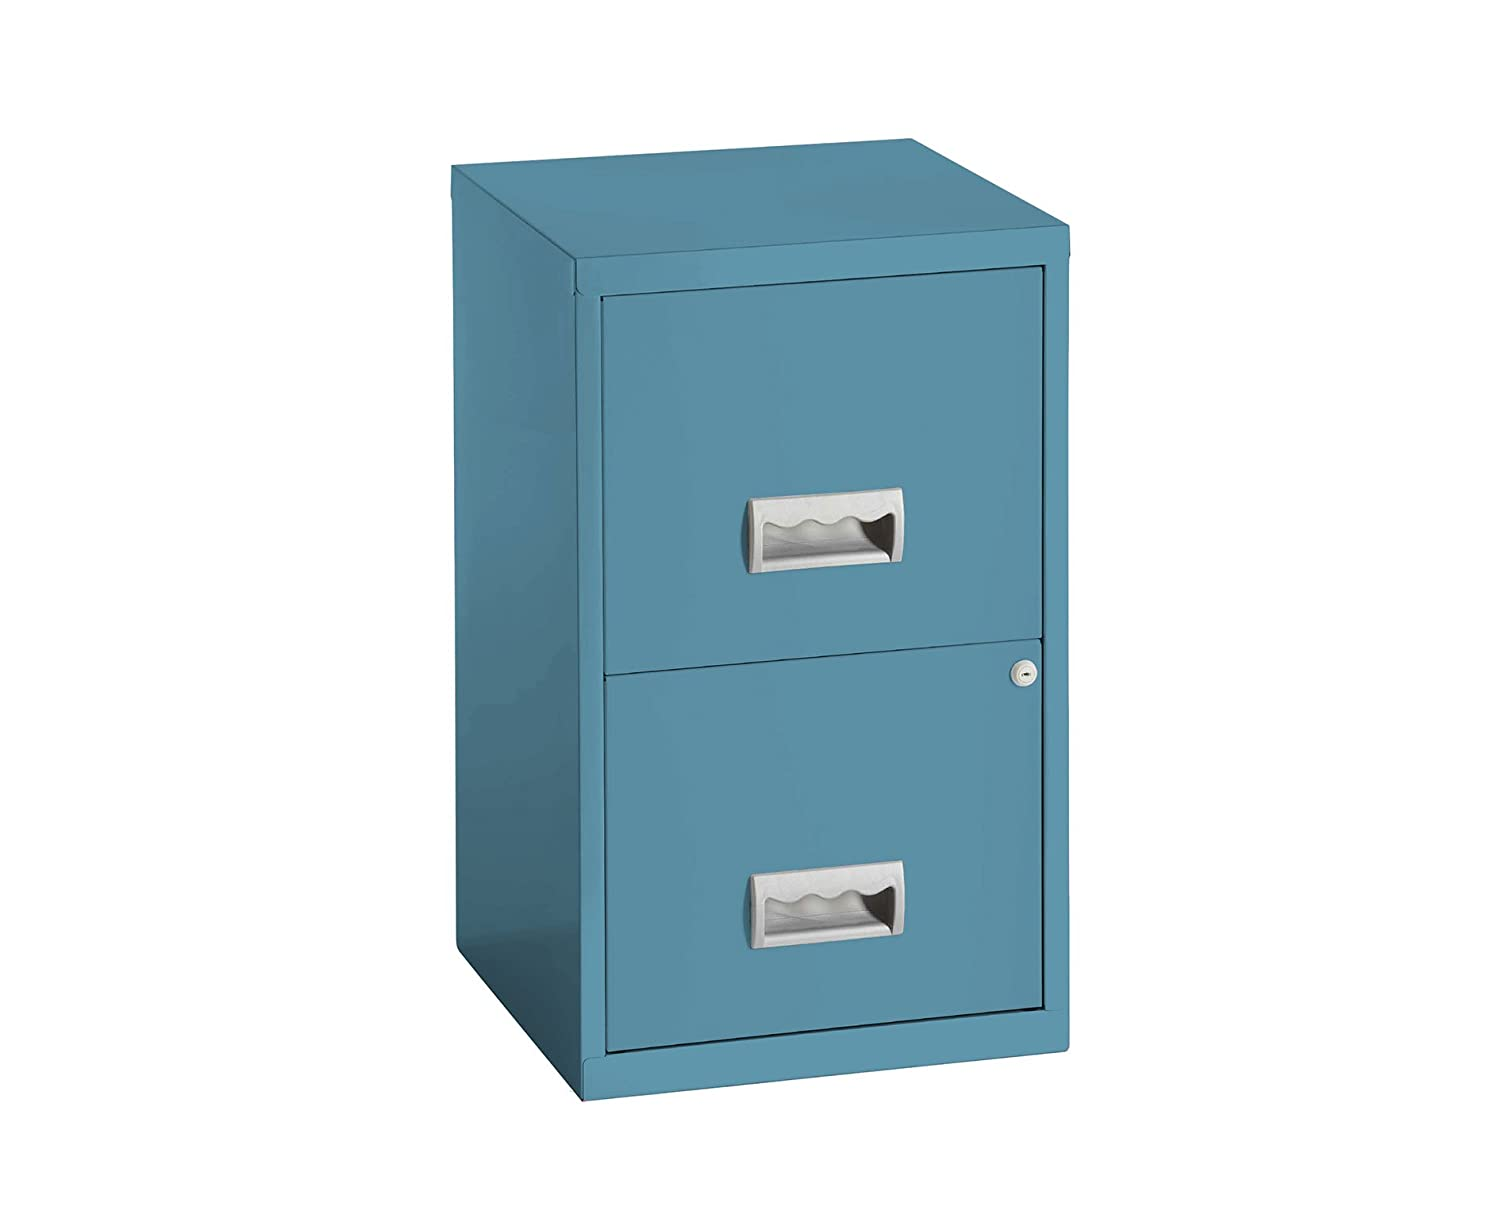 Pierre Henry Lockable A4 Filing Cabinet maxi 2 drawers with Gloss paint finish